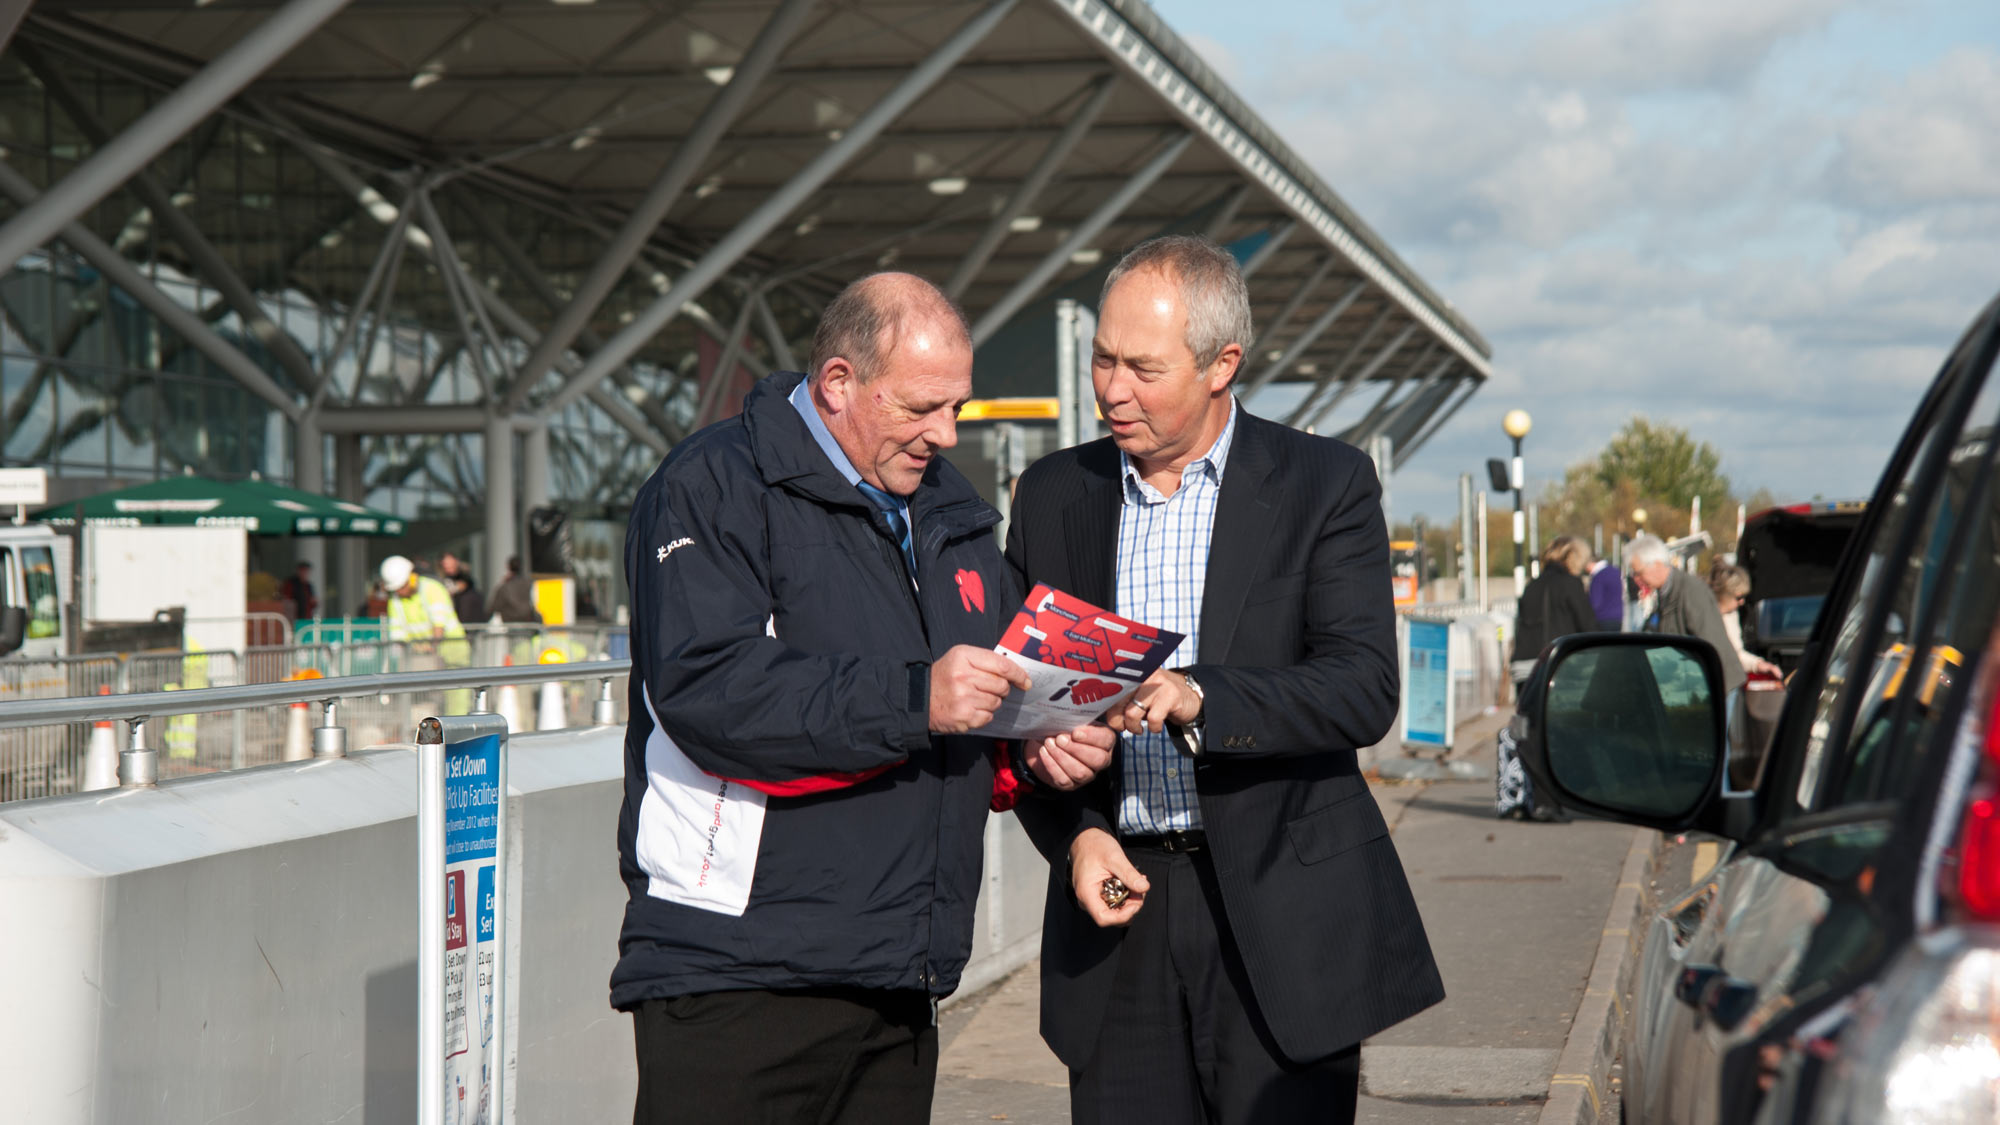 Stansted launch i love i love meet and greet parking the most experienced operator in the uk has launched at stansted airport the stansted operation will be led by jim betchley m4hsunfo